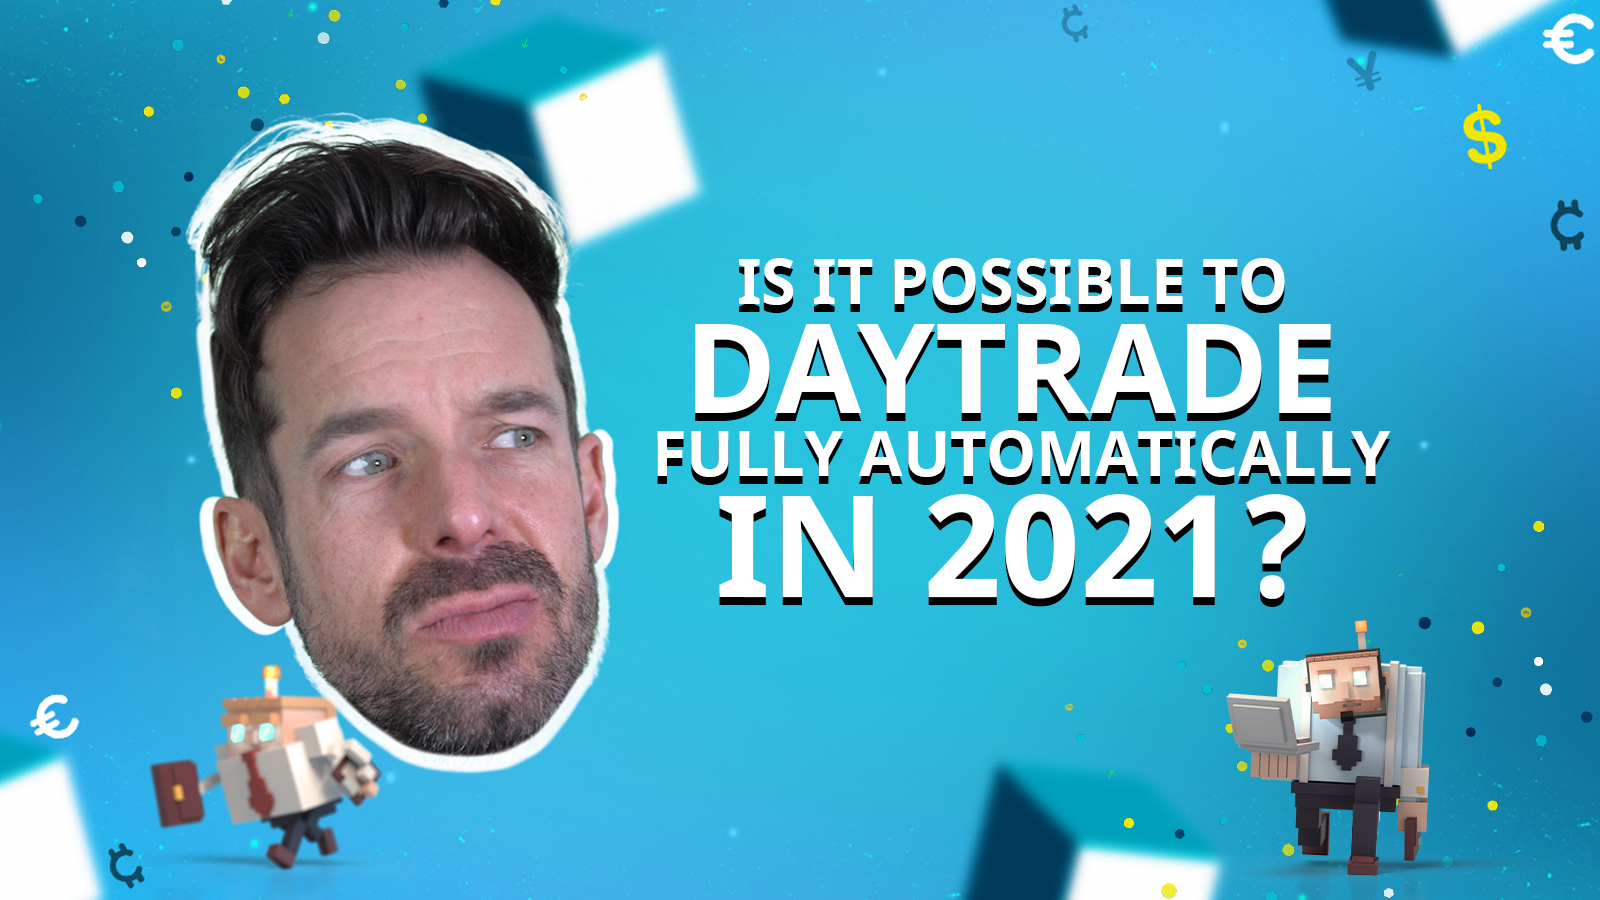 BOTS Blog: Is fully automated day trading possible in 2021?